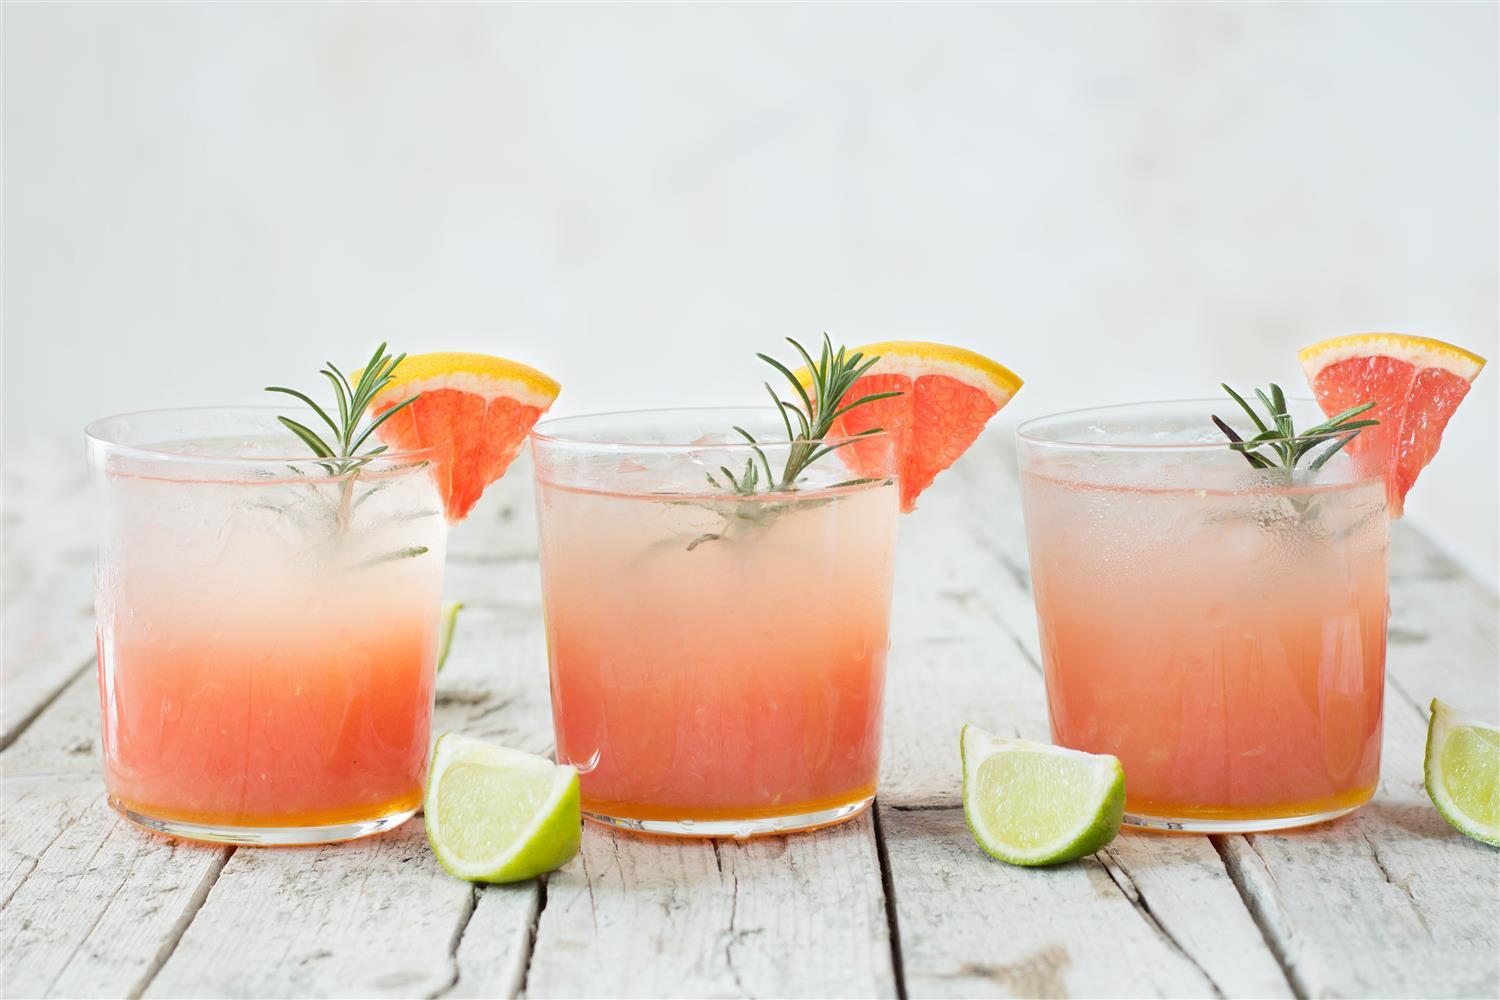 Grapefruit-Lime Cocktail with Ginger and Rosemary